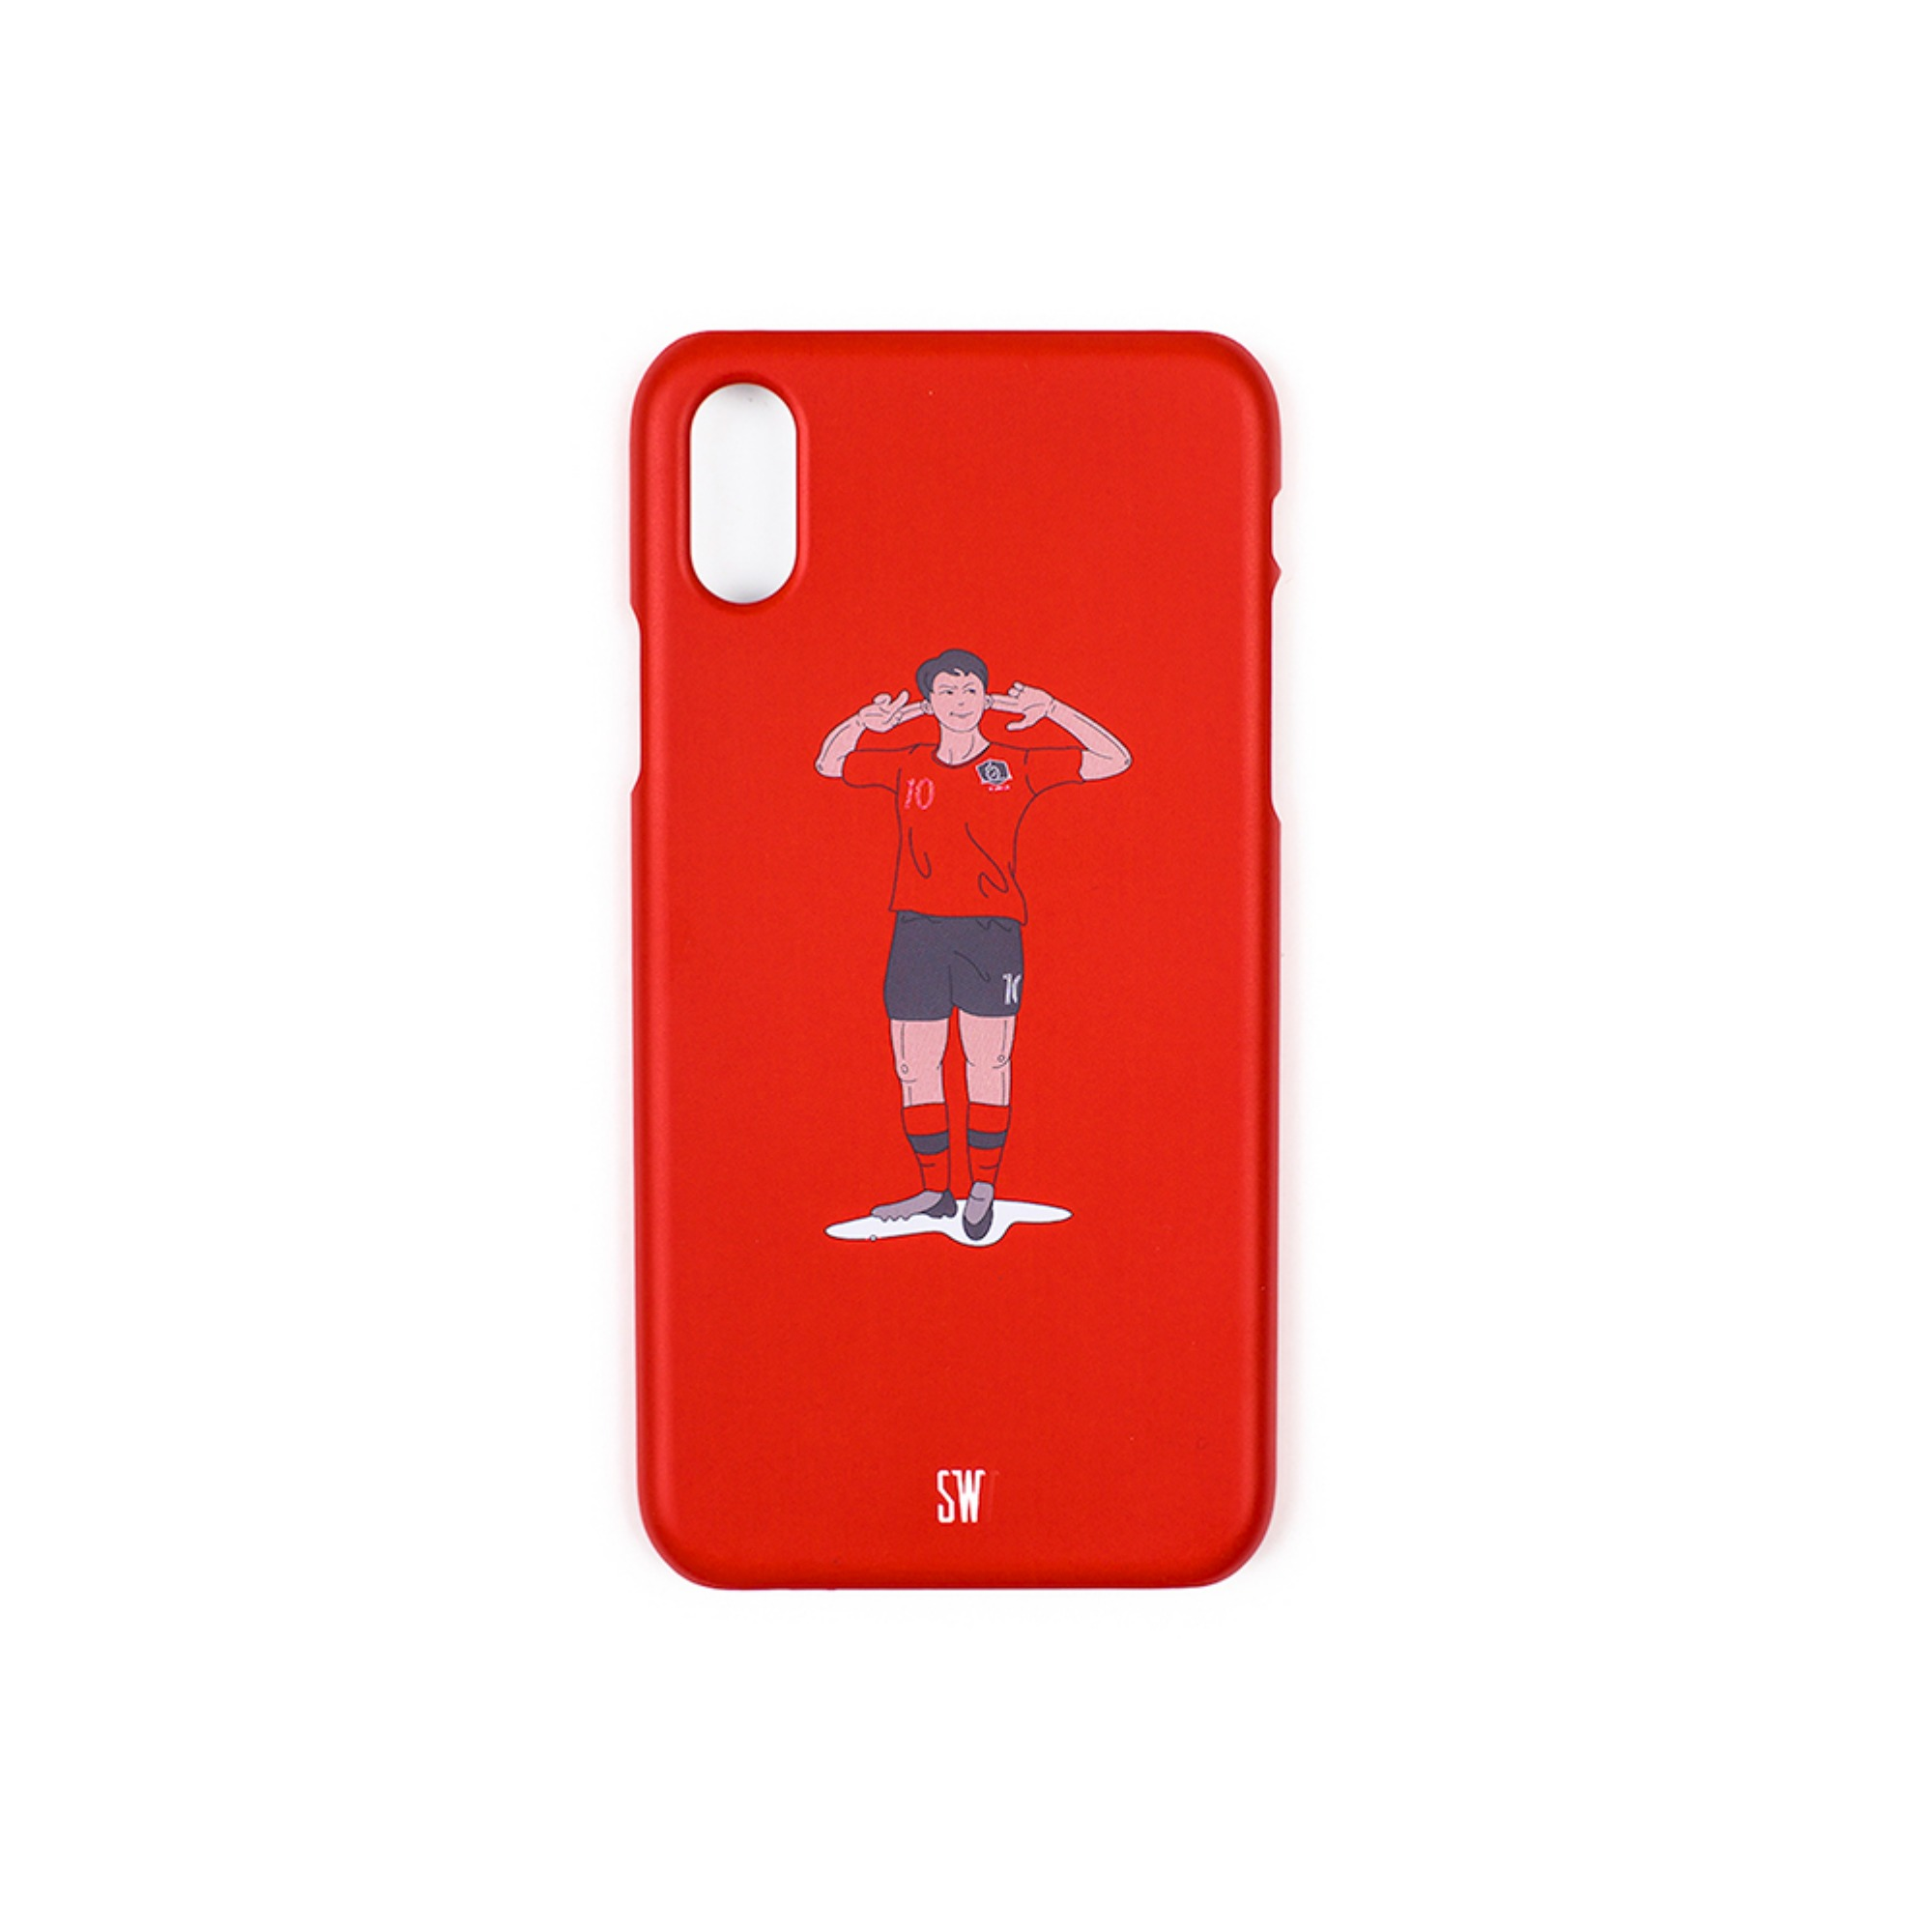 'SEUNGWOOLEE' SMARTPHONE CASE - 'SW' ILLUSTRATION (RED)